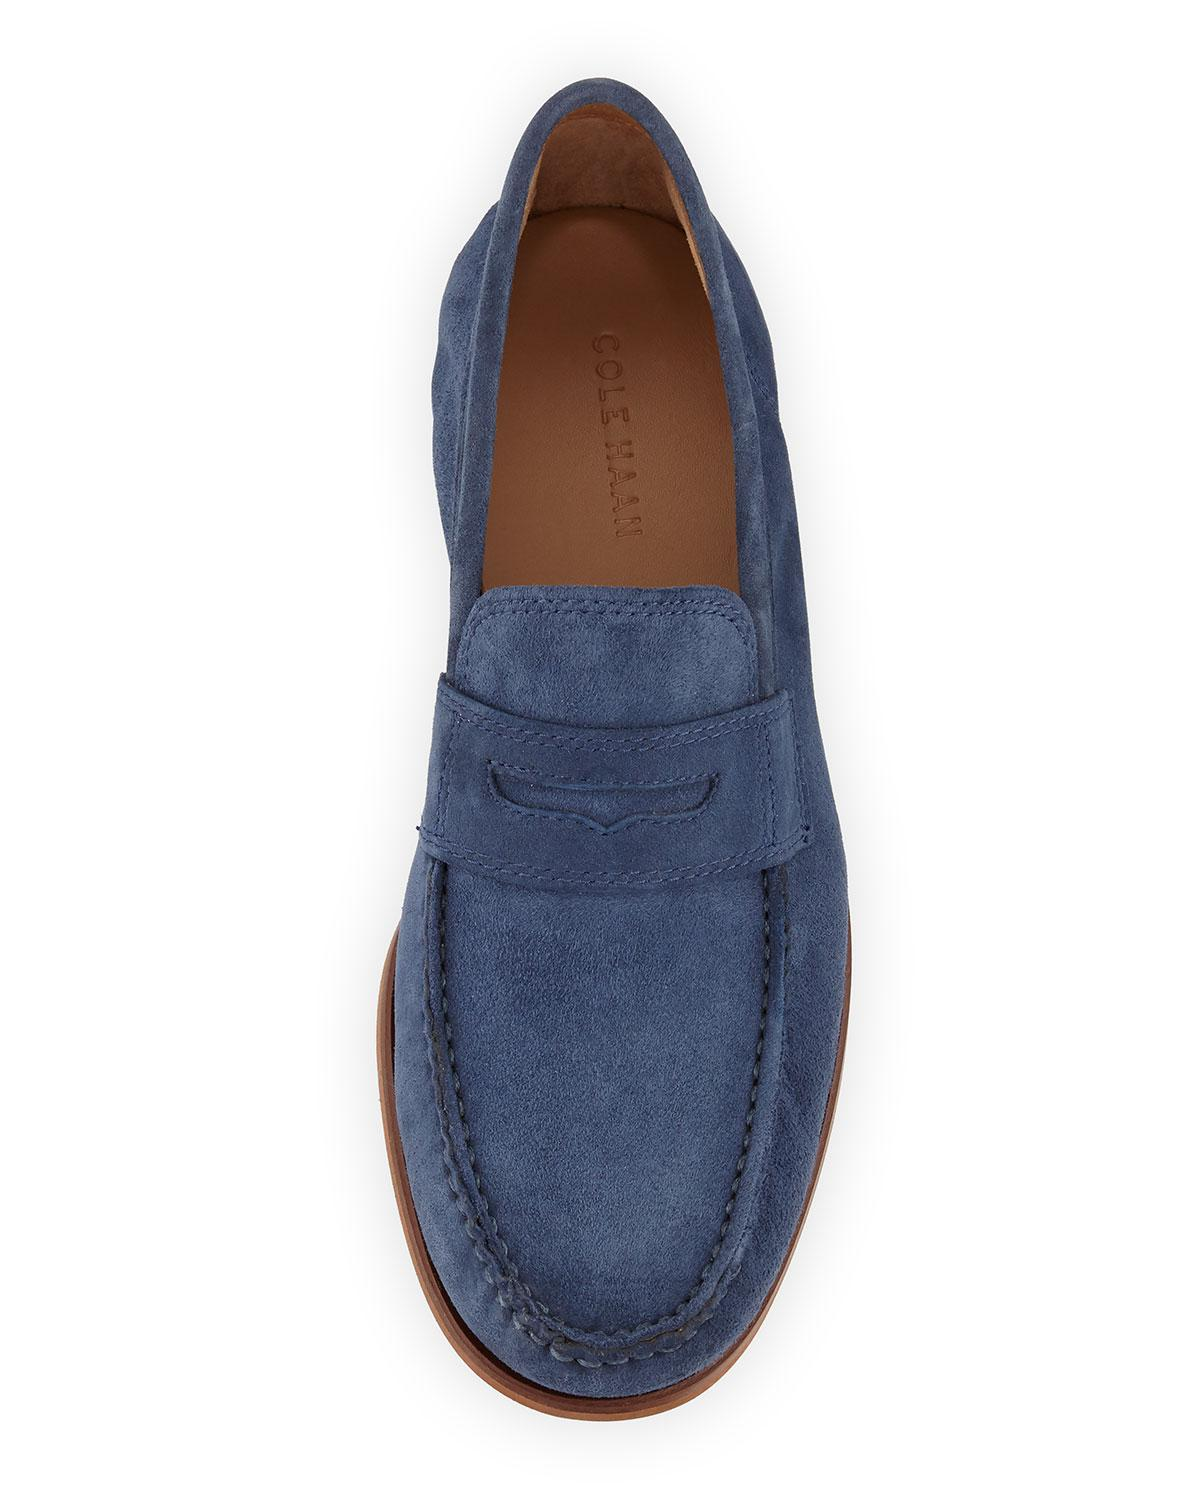 Cole Haan Topsail Penny Ii Suede Loafer in Blue for Men - Lyst